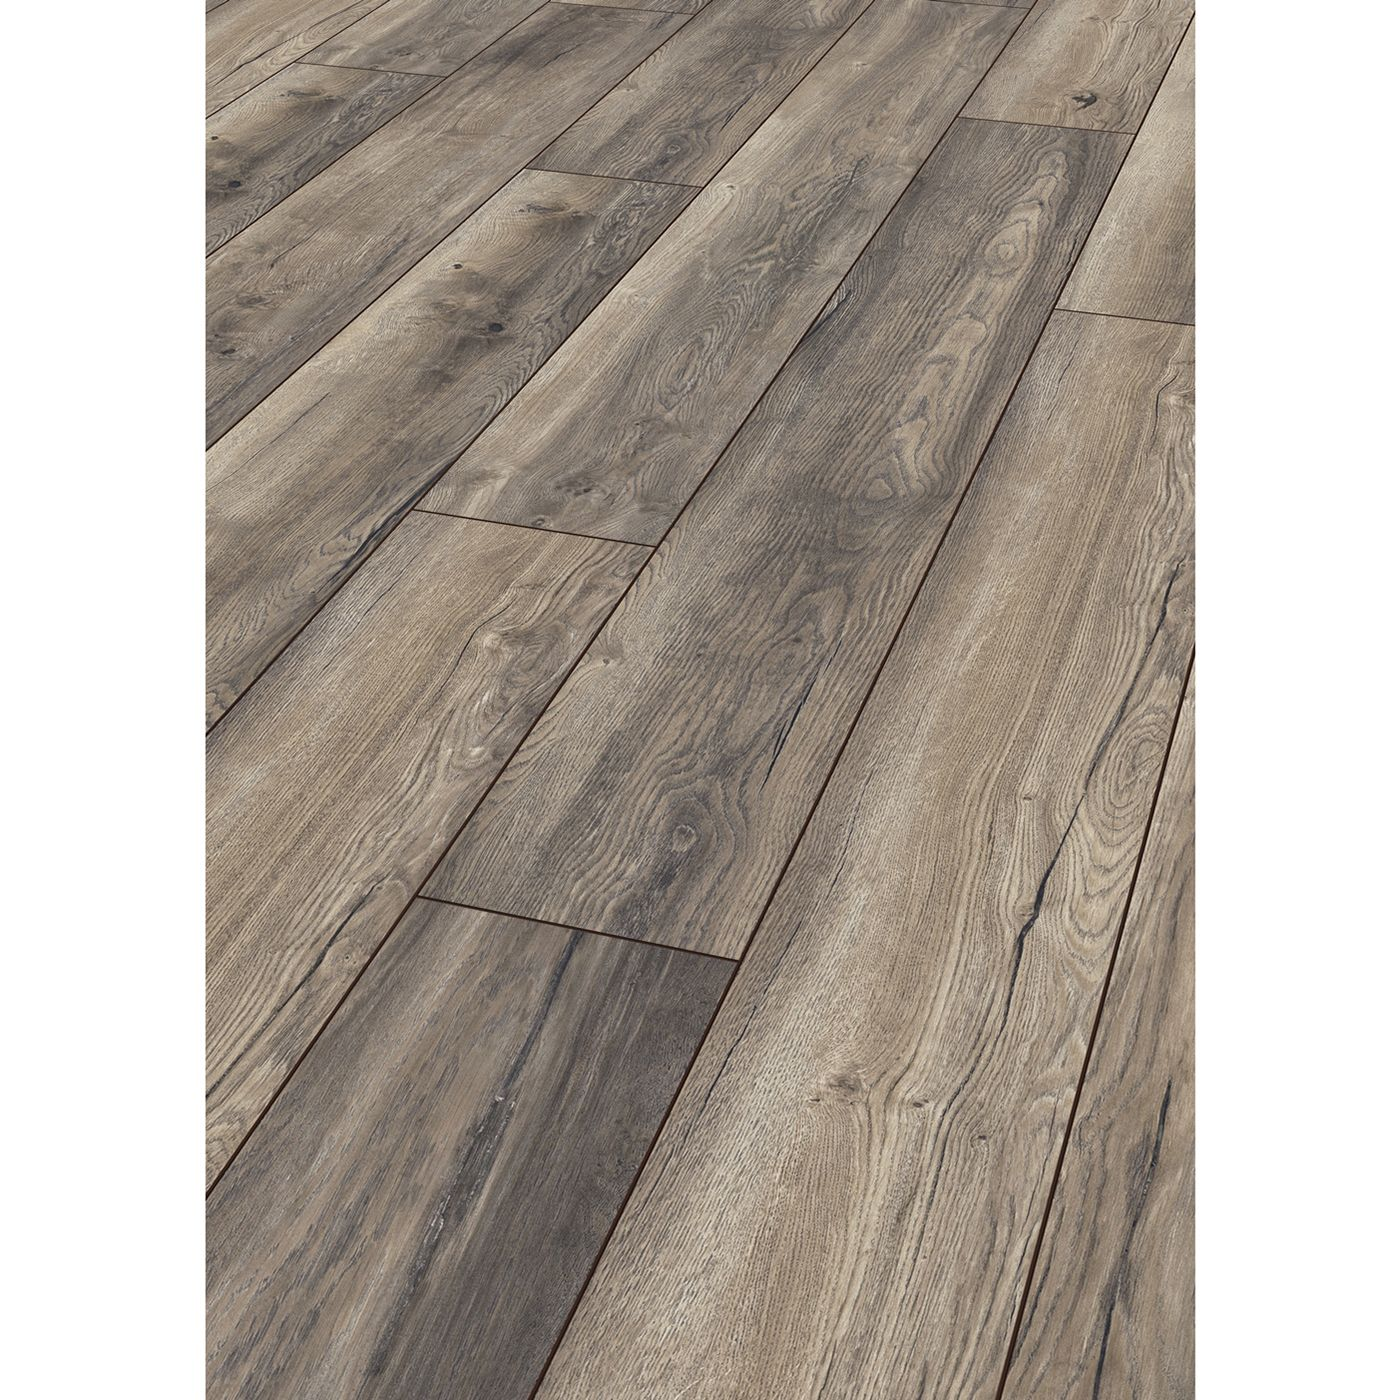 Builddirect Toklo By Swiss Krono Laminate My Floor Villa 12 Mm Collection Flooring Oak Laminate Flooring Hardwood Floors